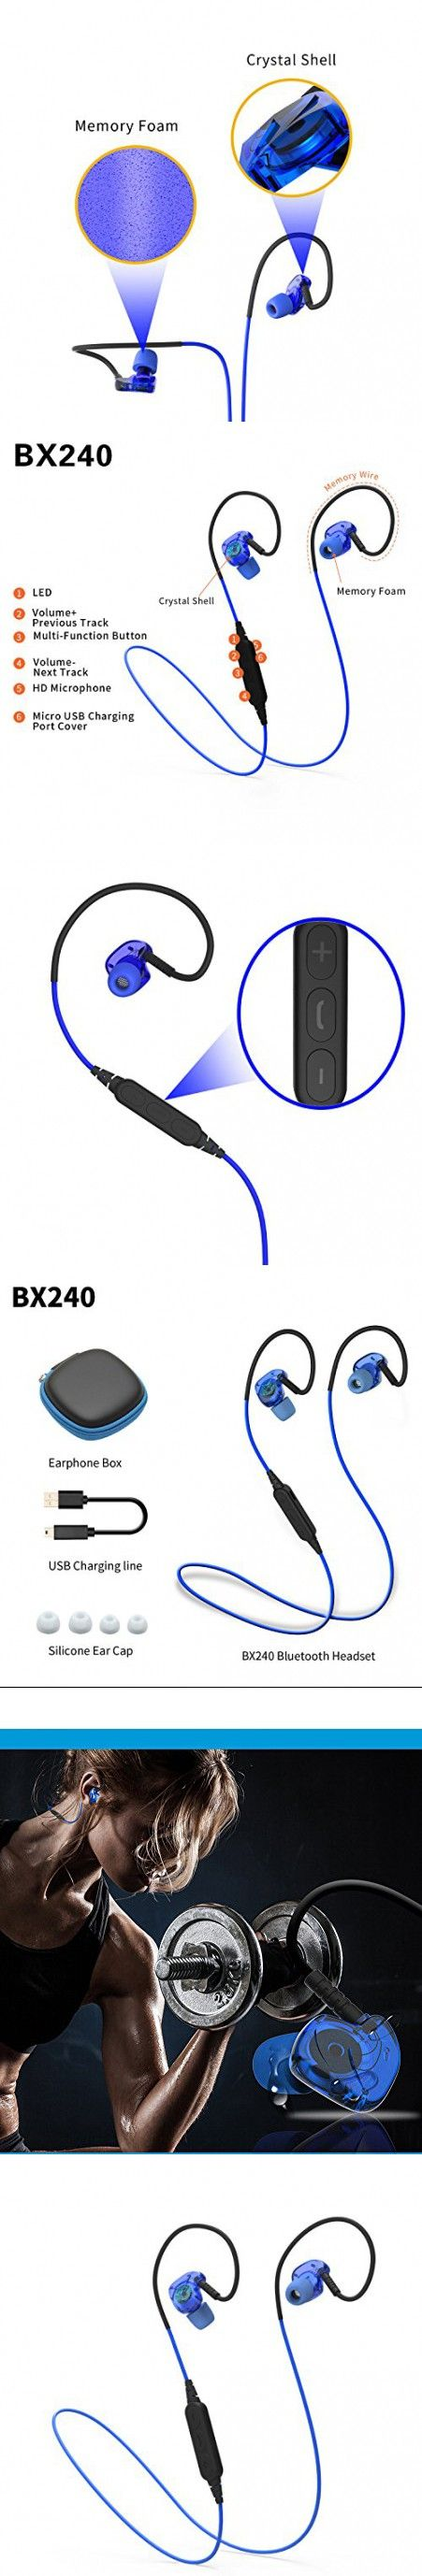 XIONG Wireless Bluetooth 4.1 Fitness Headphones Stereo Water Proof Headphones Noise Cancelling Earbuds for running,Gym (Blue)